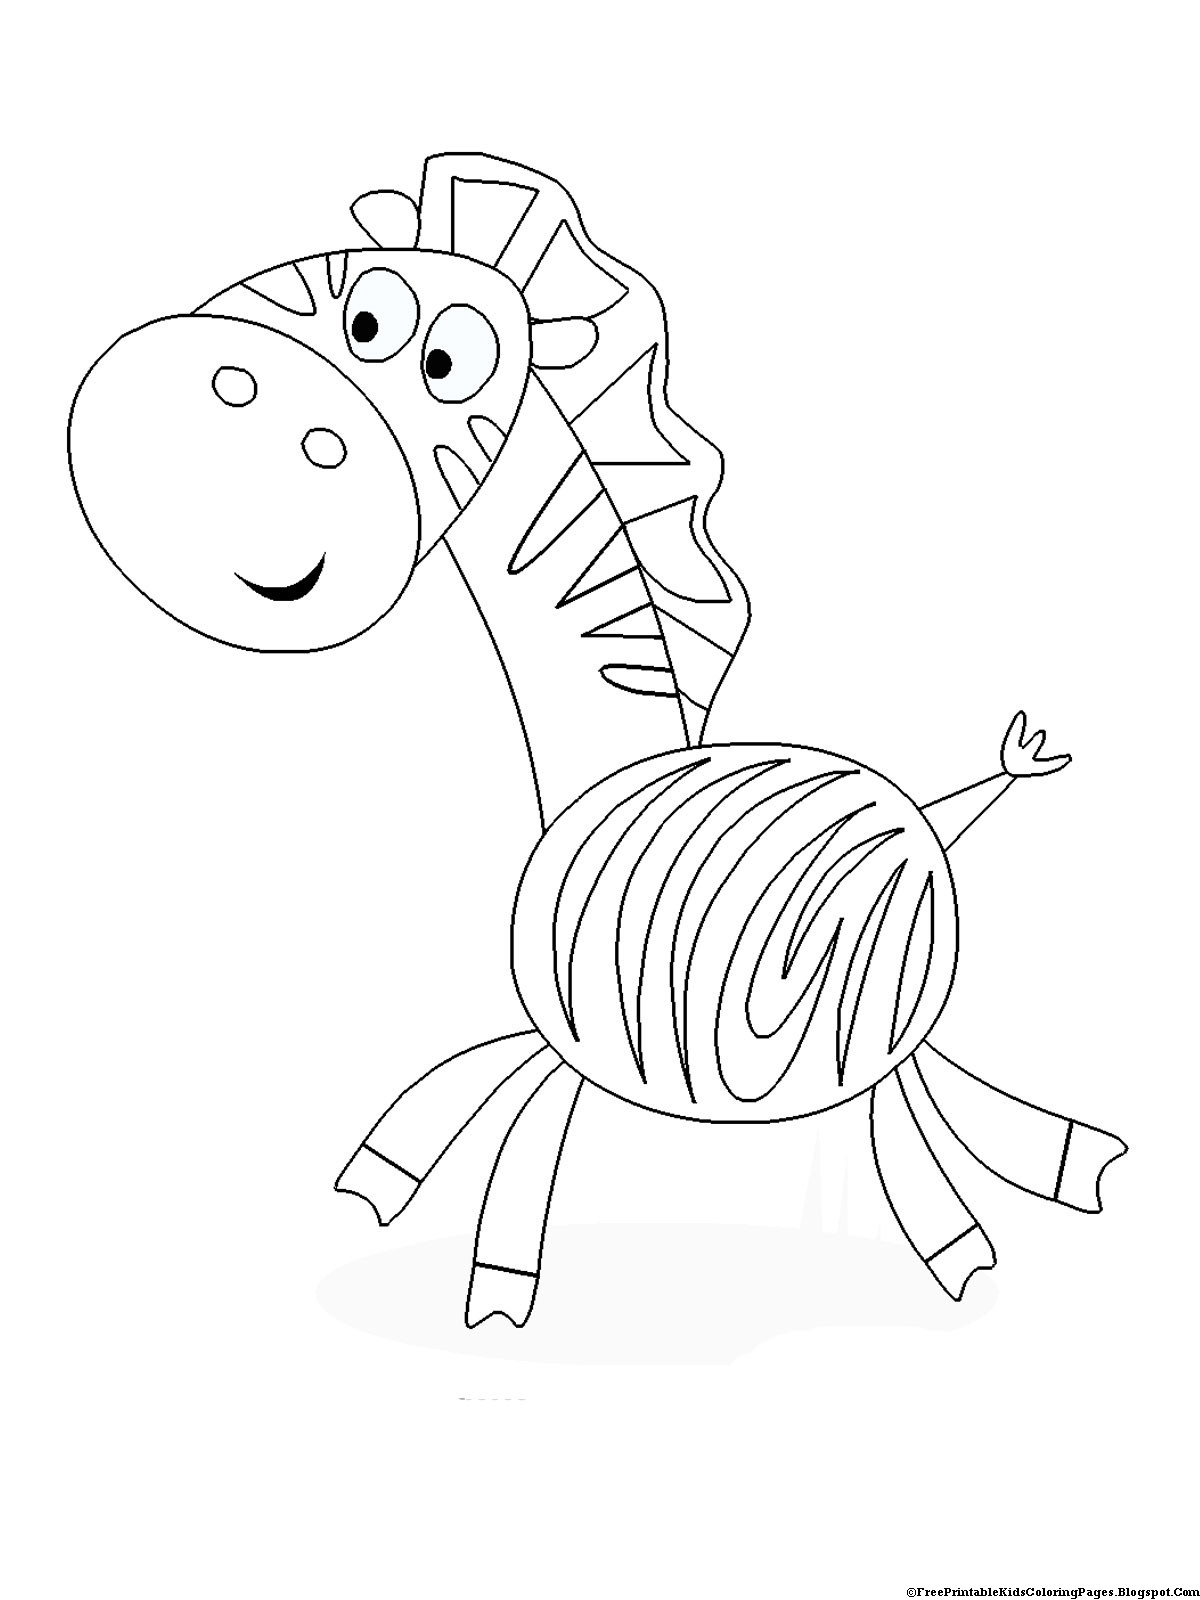 Best ideas about Print Free Coloring Pages . Save or Pin Zebra Coloring Pages Free Printable Kids Coloring Pages Now.